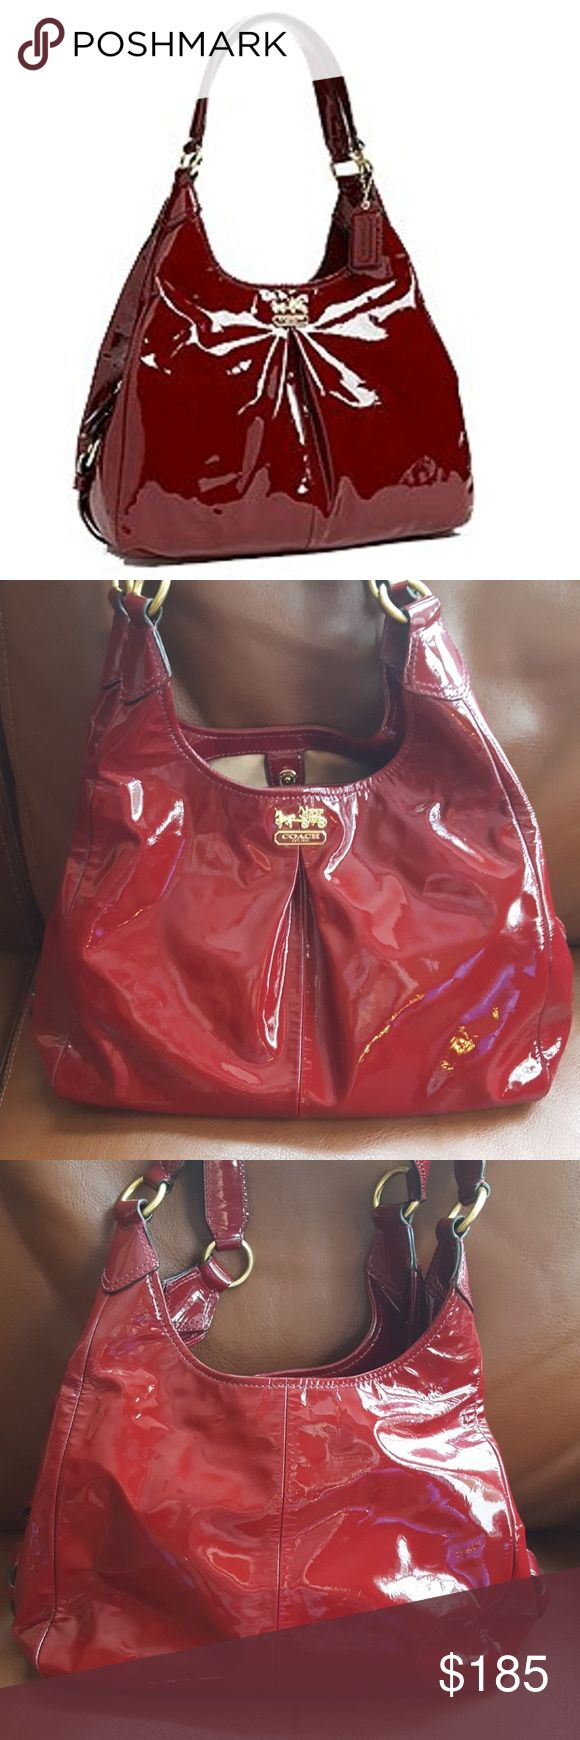 JUST IN🔶️ Coach Madison Maggie Patent Hobo Gorgeous crimson shiny patent coach hobo bag. EUC. 12in x 11in x 3.5in.  10in strap drop.  Gold sateen lining.   Interior is very clean.  No marks or wear to edges or corners. Very gently used. Coach Bags